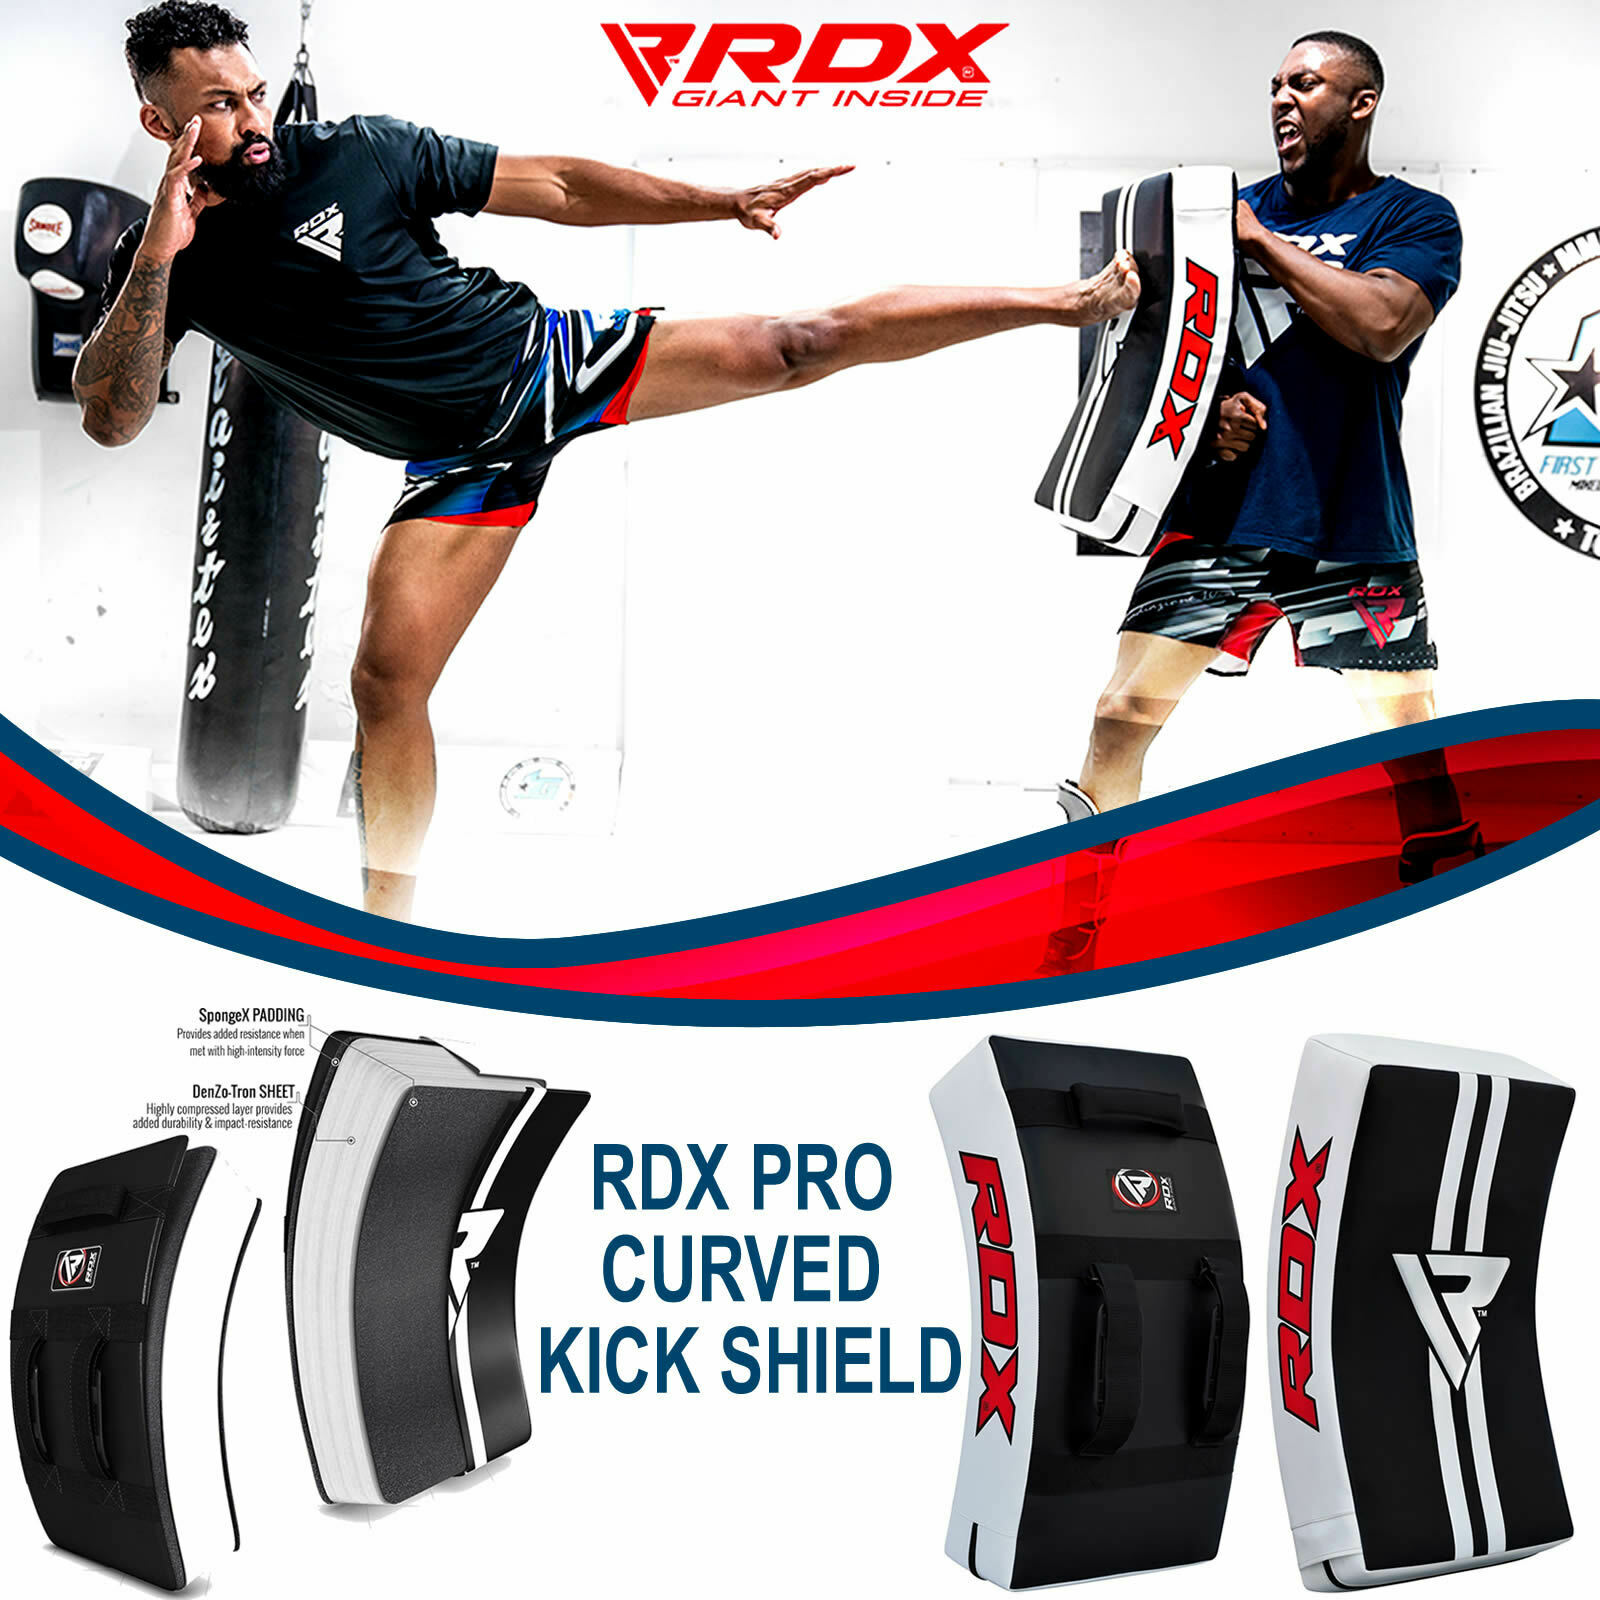 Large Muay Thai Karate MMA Taekwondo Boxing Target Focus Kick Punch Shield Pad